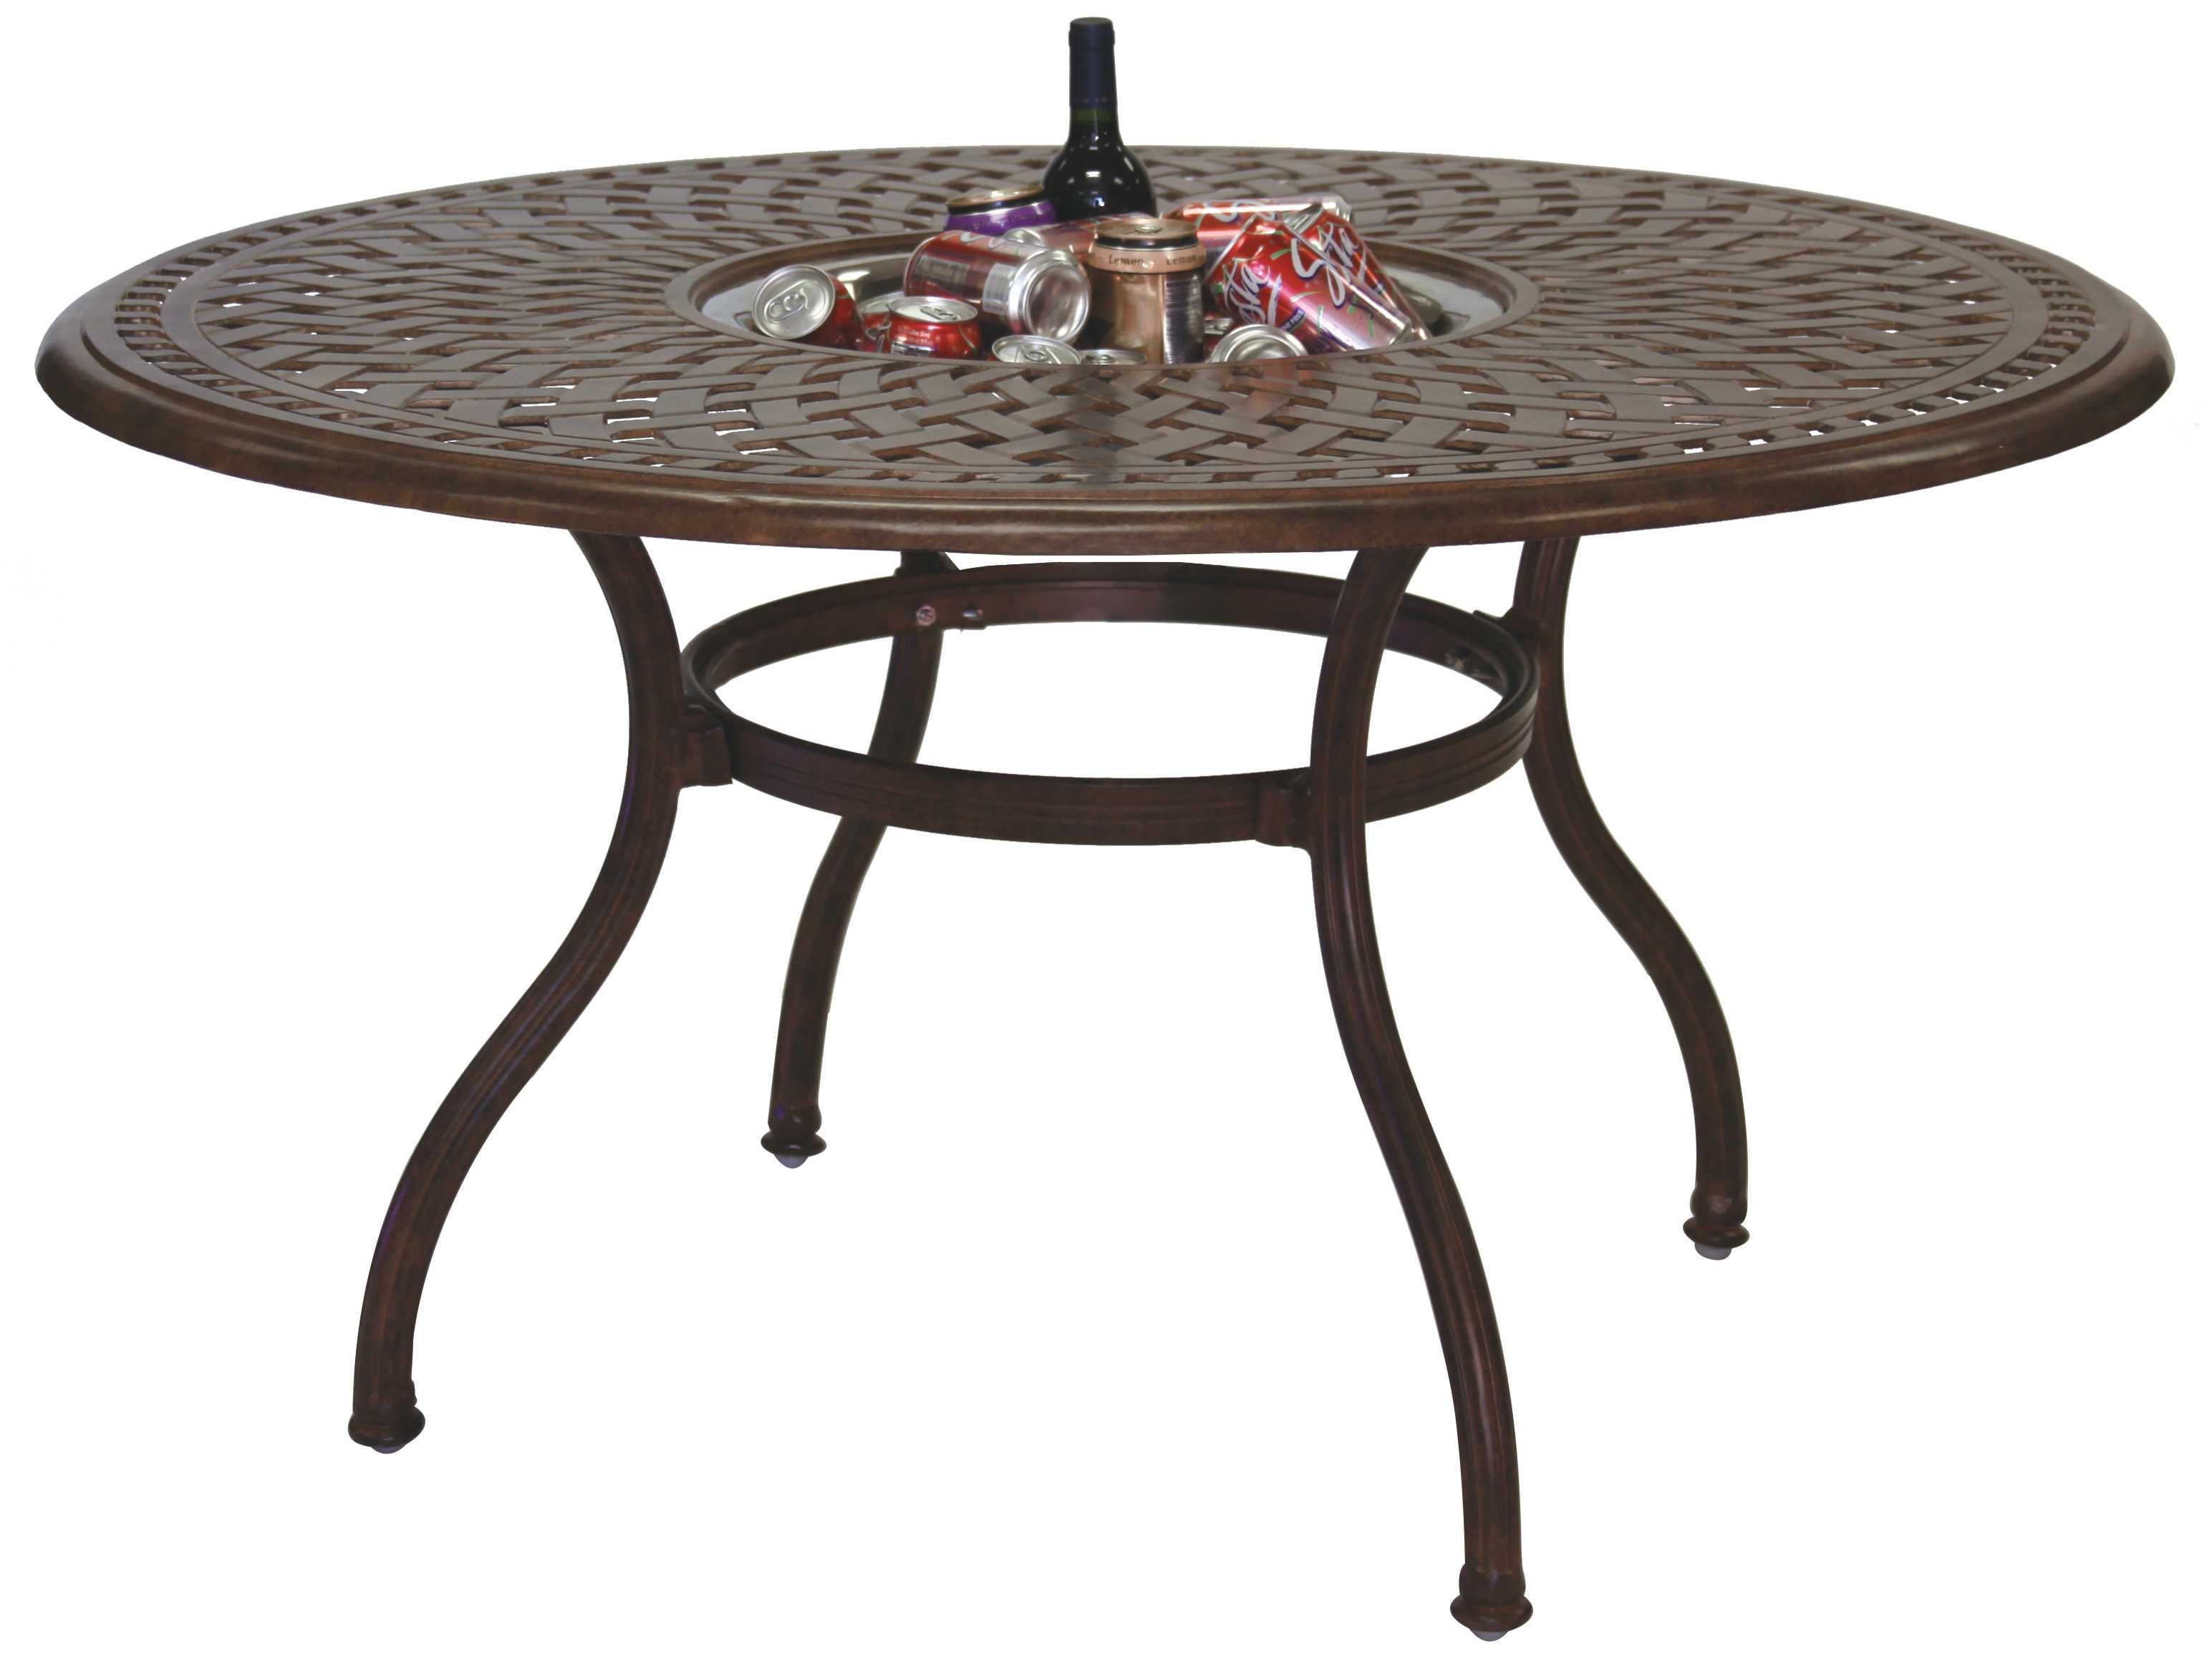 Darlee outdoor living series 60 cast aluminum 52 round for 60 round dining table